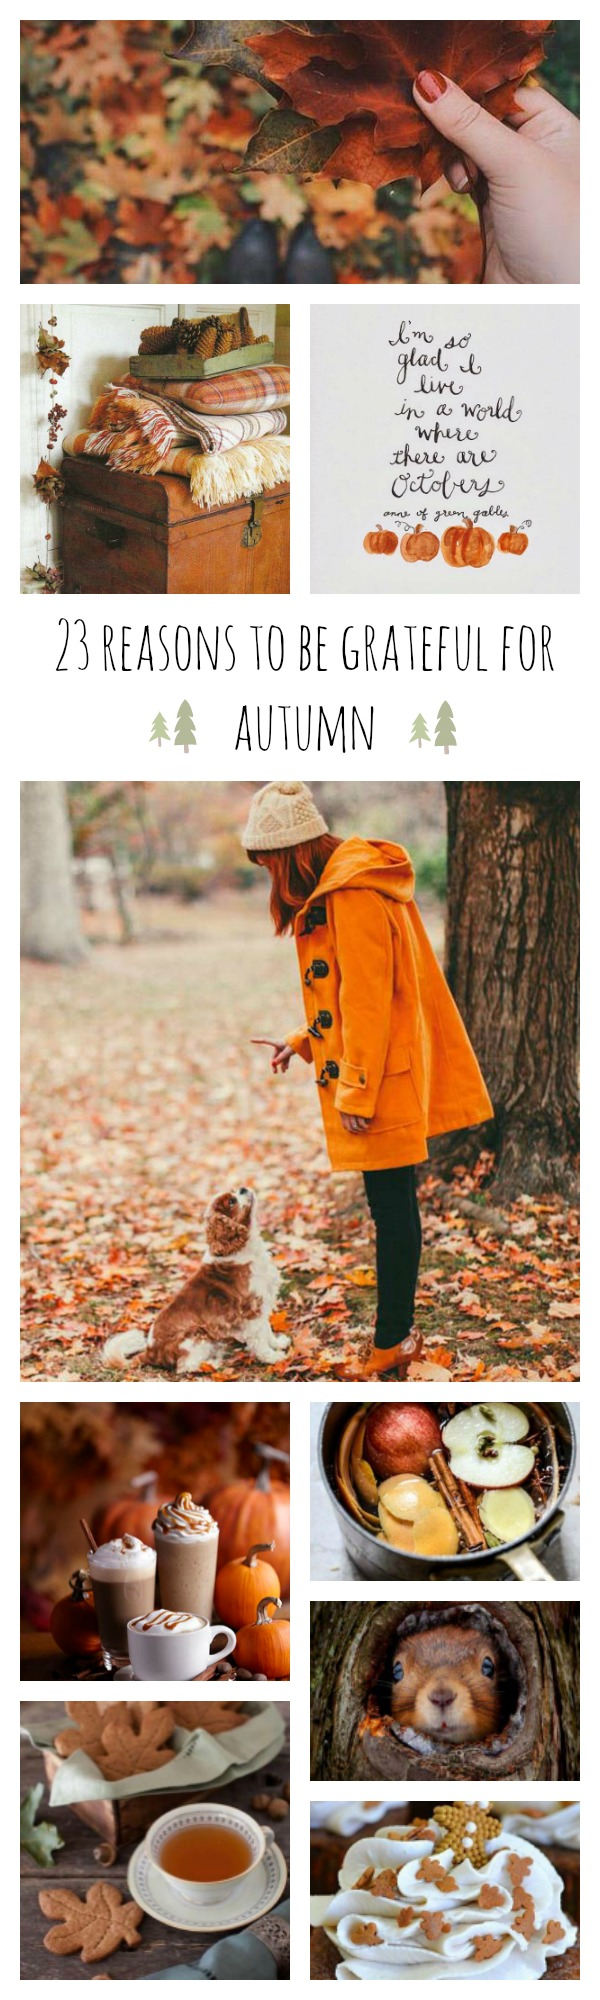 23 reasons to love autumn